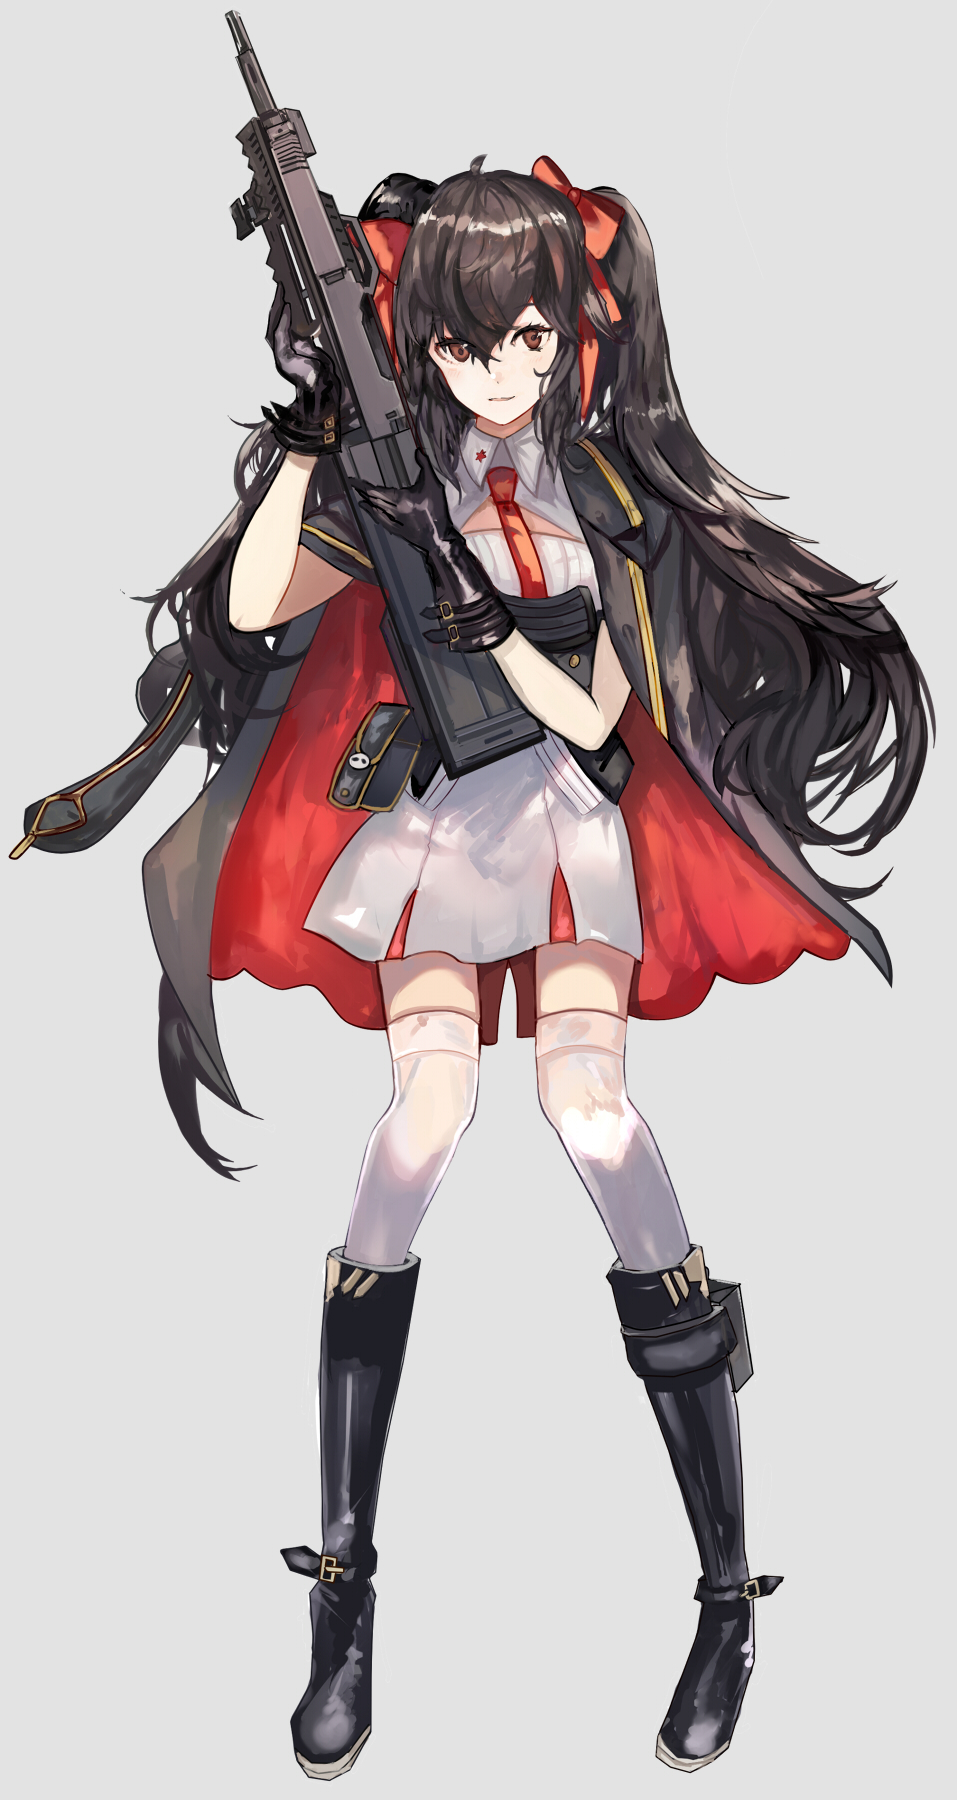 1girl bangs black_cape black_footwear black_gloves blush boots bow brown_eyes brown_hair cape commentary_request dress eyebrows_visible_through_hair full_body girls_frontline gloves grey_background gun hair_between_eyes hair_bow highres holding holding_gun holding_weapon long_hair multicolored multicolored_cape multicolored_clothes necktie object_namesake ori_(momonimo) parted_lips pleated_dress qbz-97 qbz-97_(girls_frontline) red_bow red_cape red_neckwear simple_background solo thigh-highs thighhighs_under_boots twintails very_long_hair weapon white_dress white_legwear